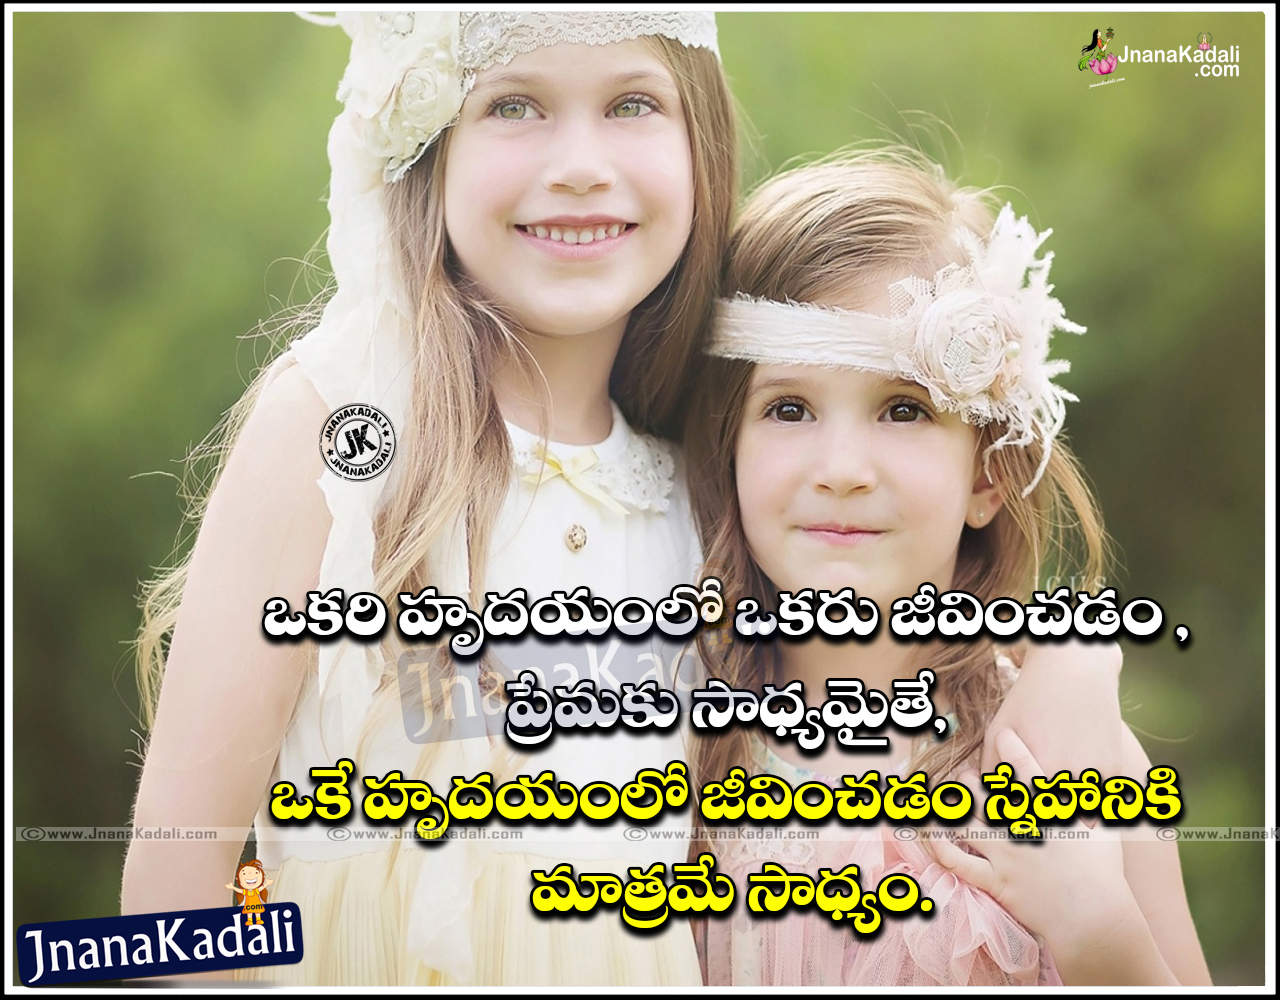 Friendship Value Quotations in Telugu Language with Friends Wallpapers,Latest Telugu Best Friends Quotes and